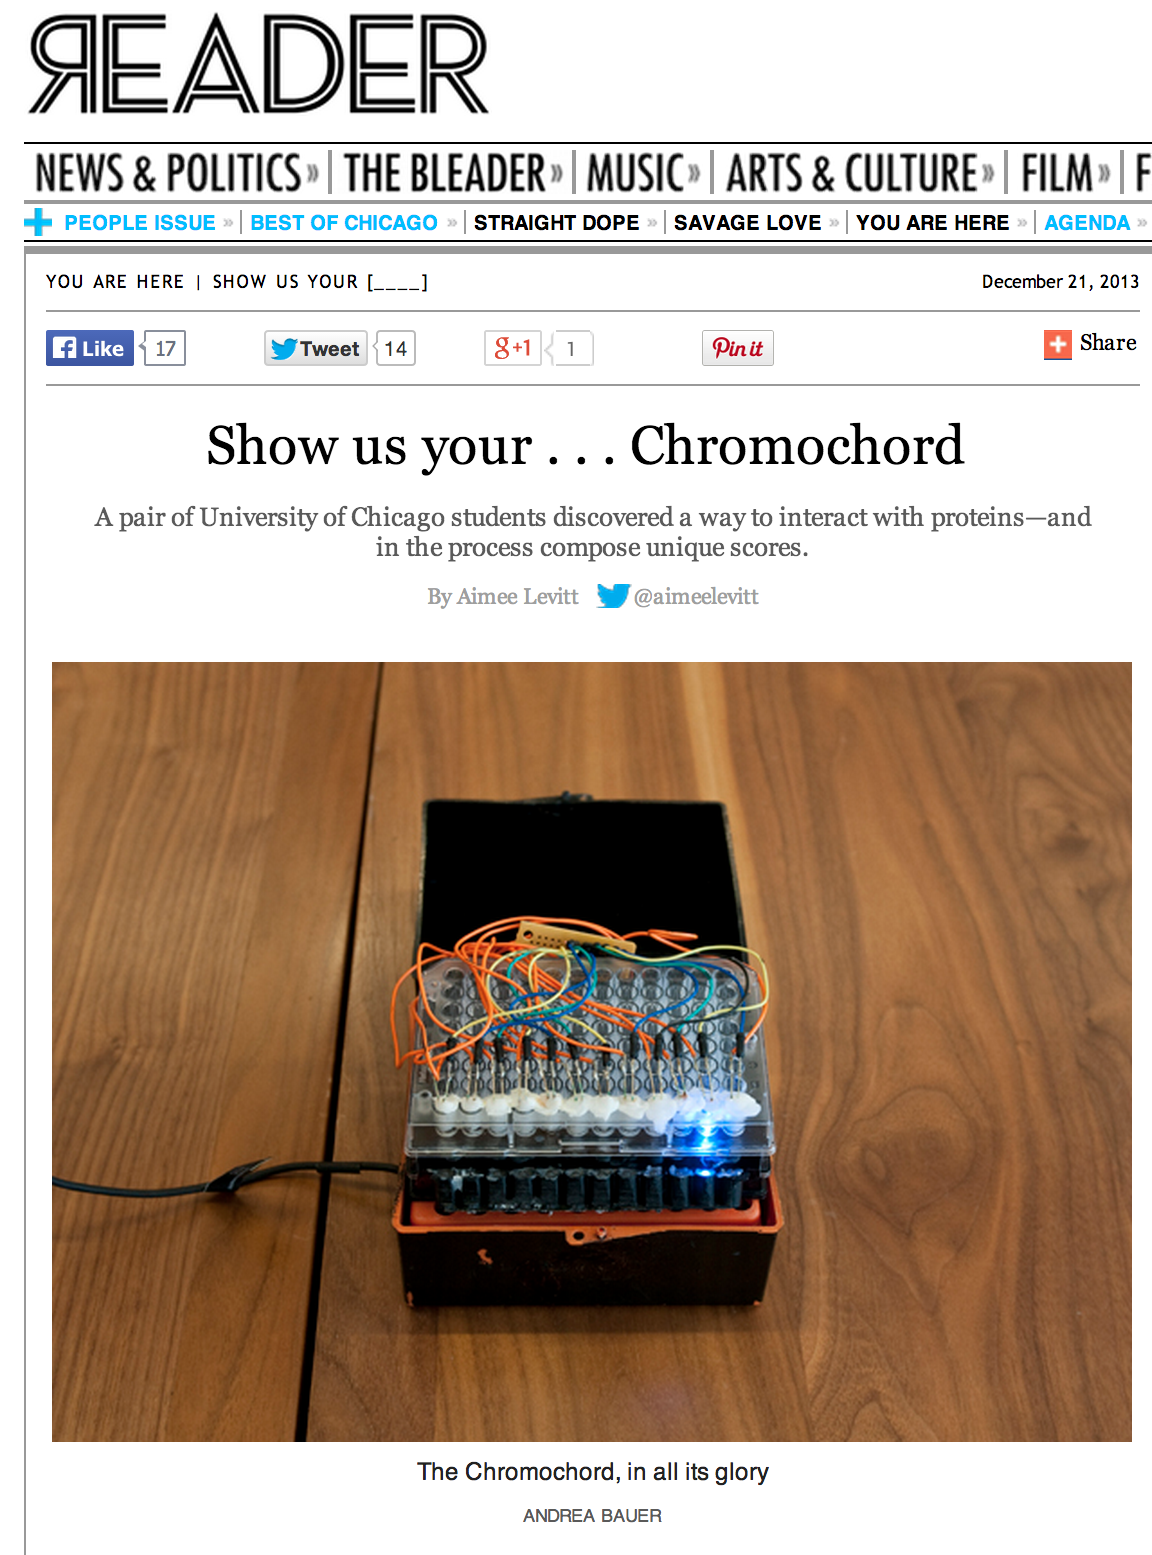 The Reader discovers Chromochord